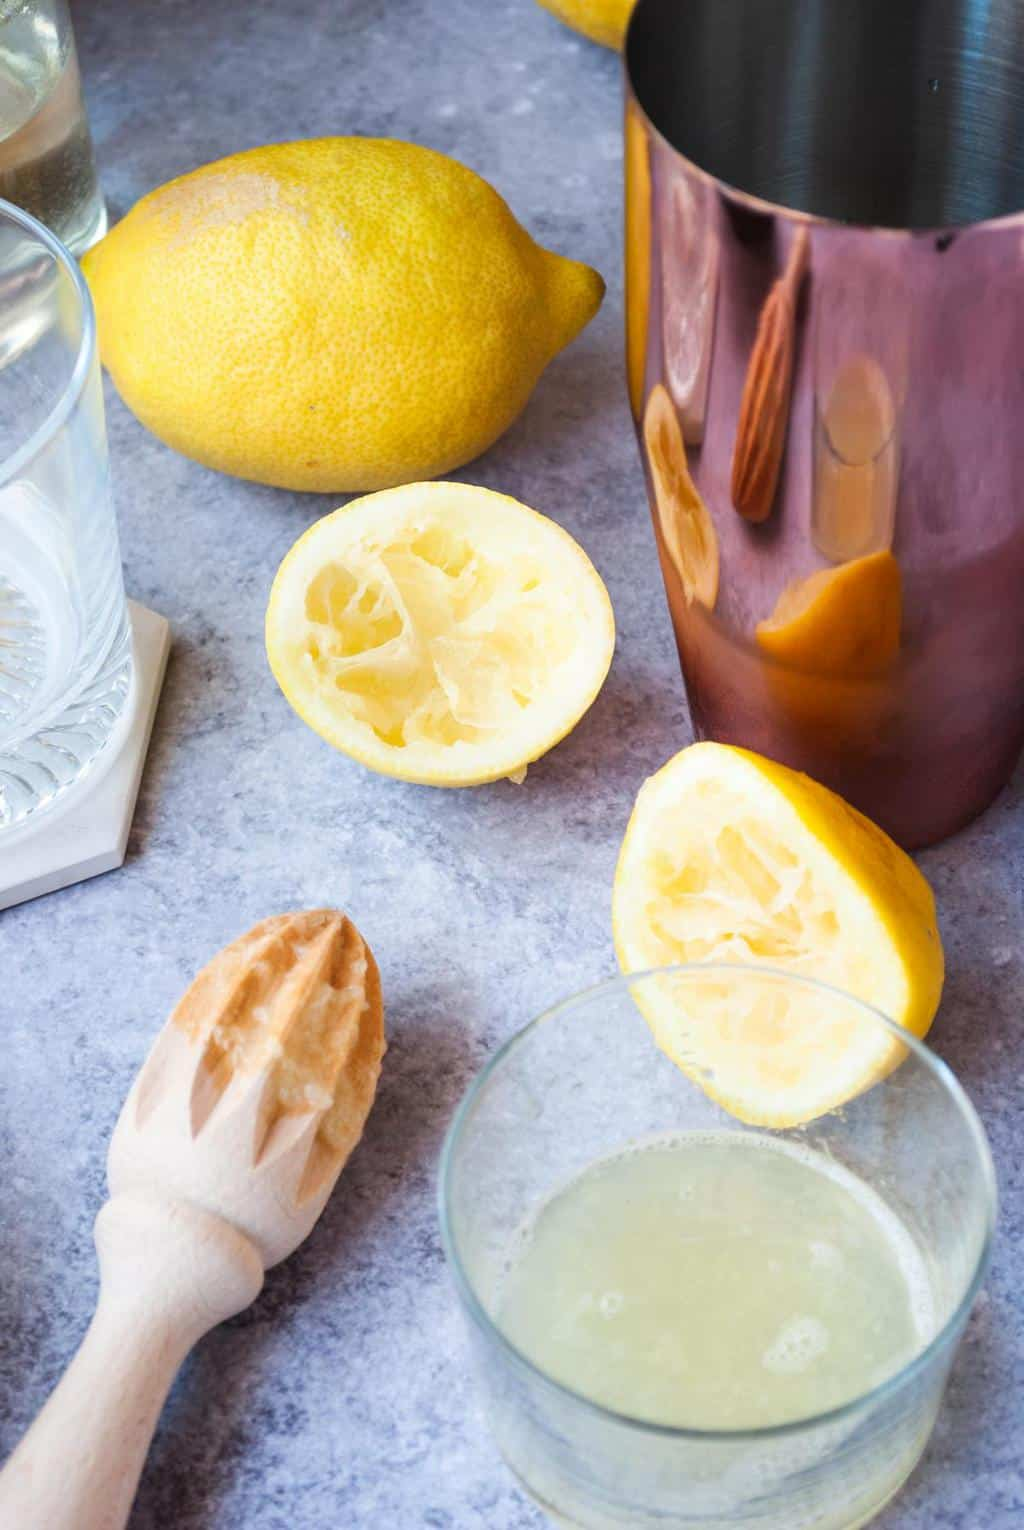 Amaretto Sour Ingredients - a photo of a freshly squeezed lemon placed inside a glass.